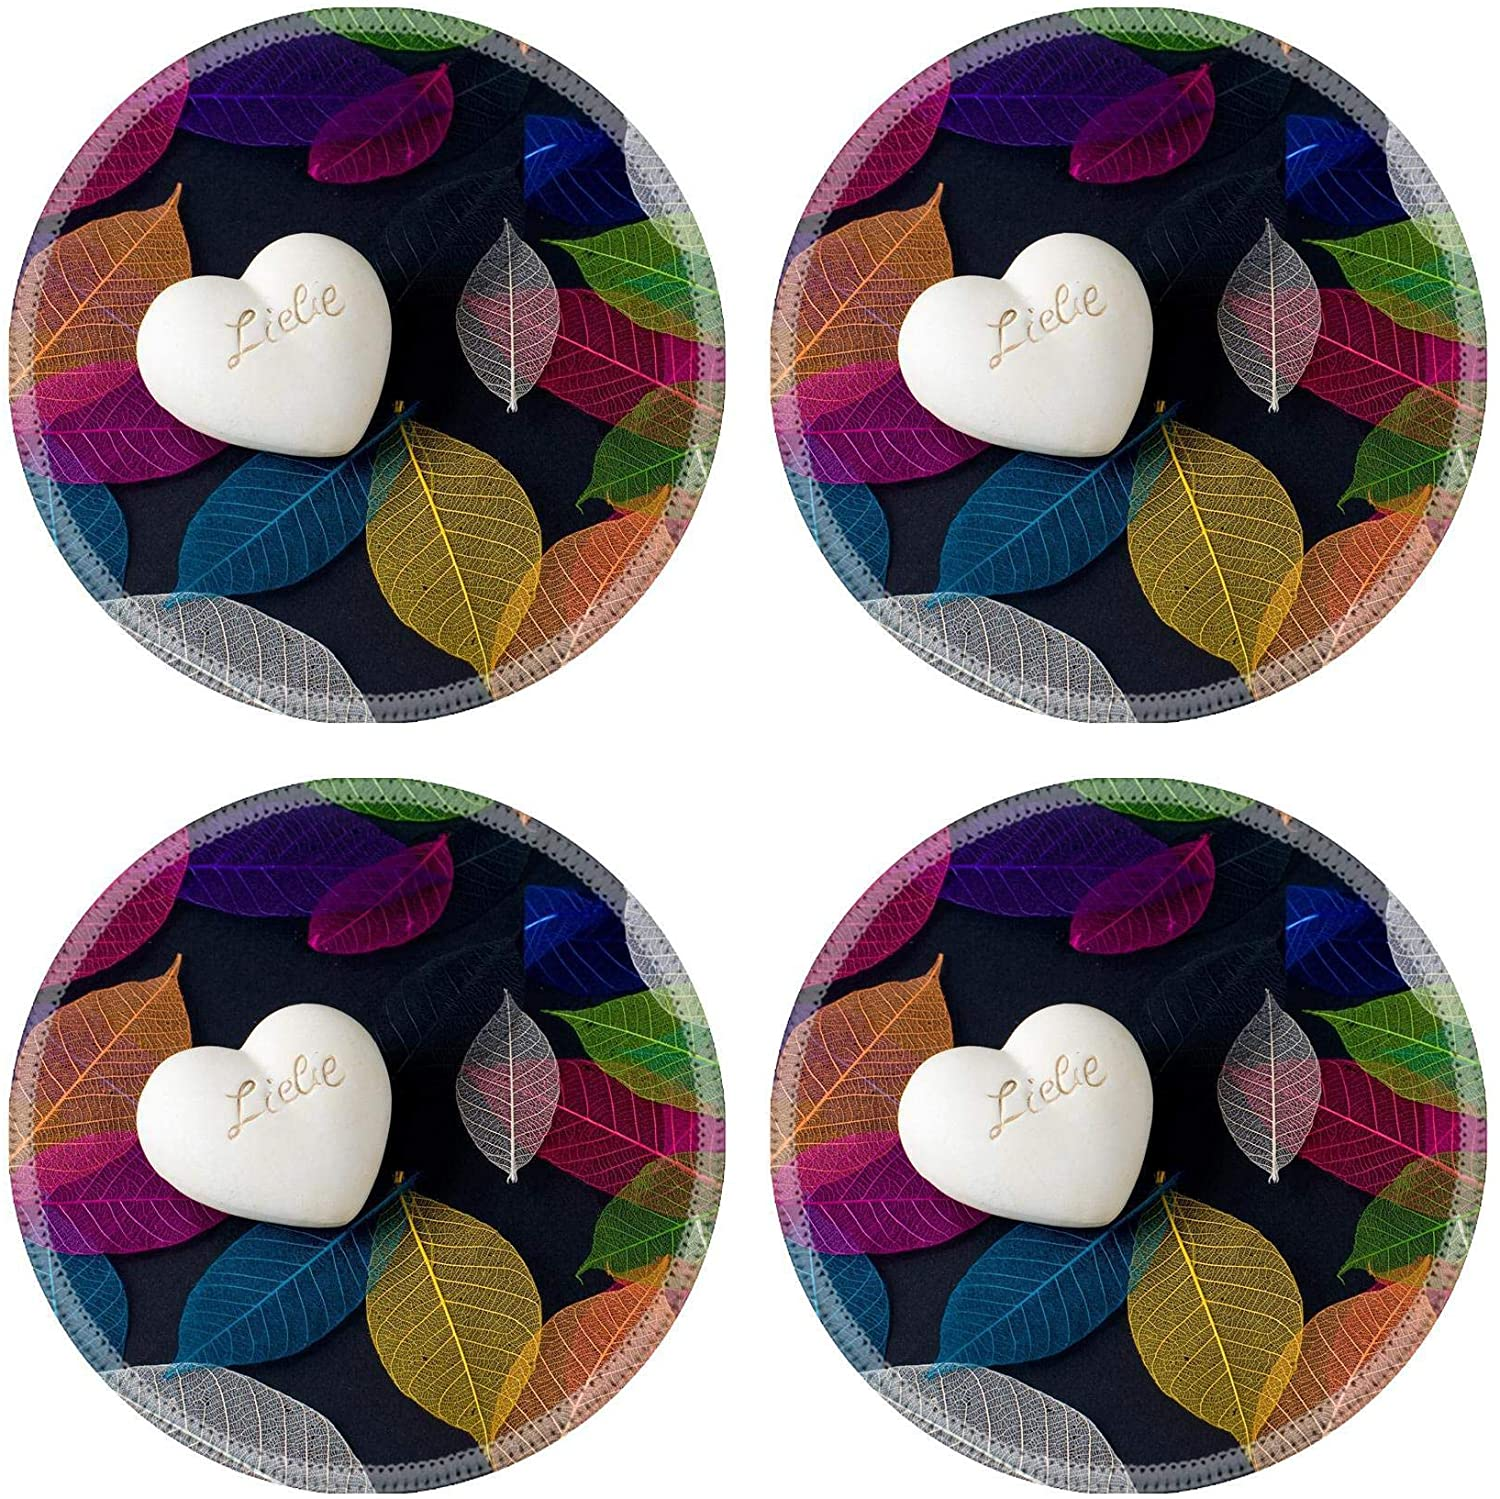 MSD Natural Round Drink Coaster set of 4 Image ID: 8807461 Heart of stone on the carpet of colorful leaves